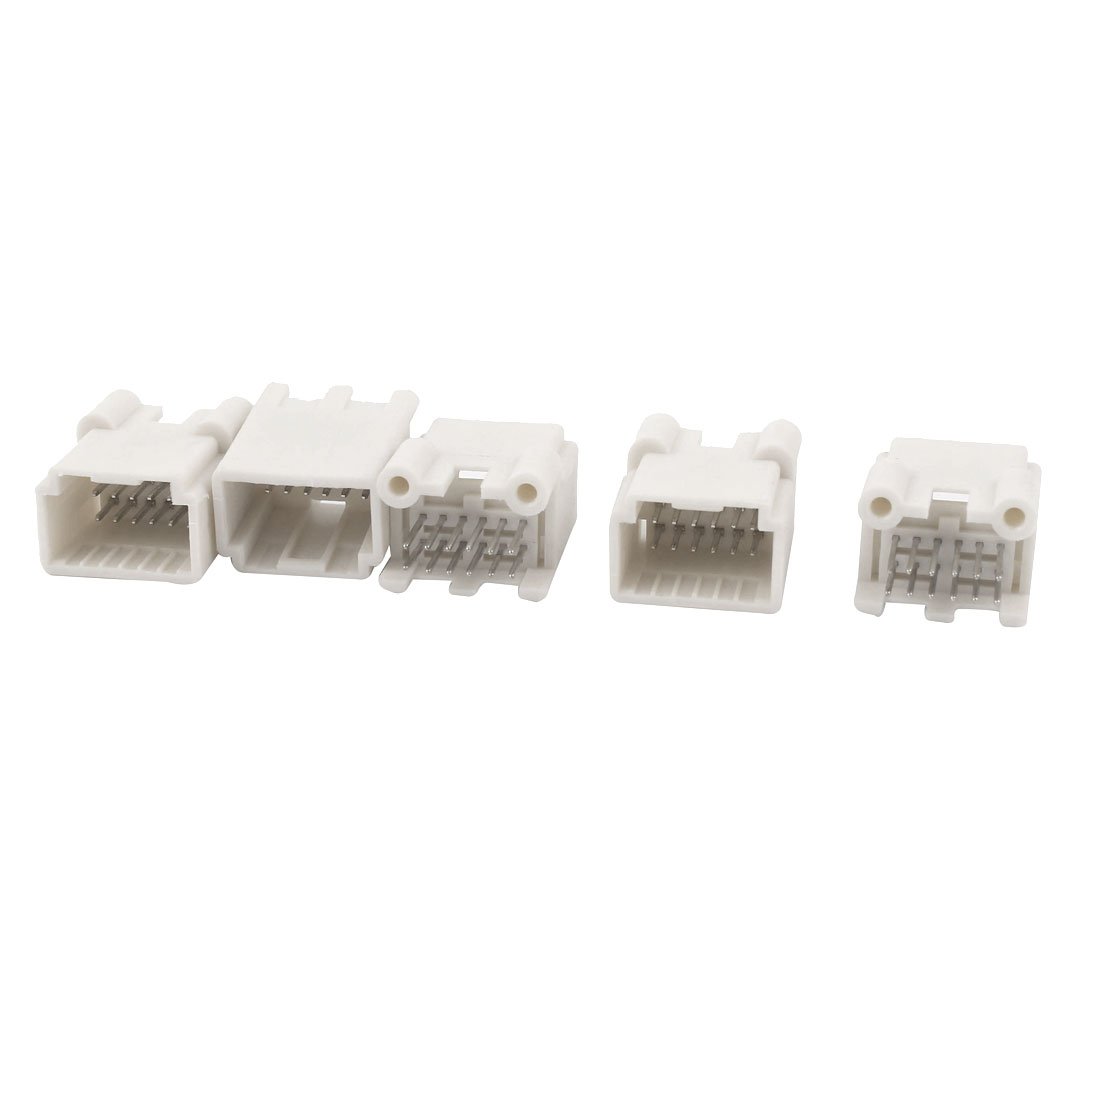 5PCS 12 Straight Pin 2.54mm Pitch Header Connector Socket Box White